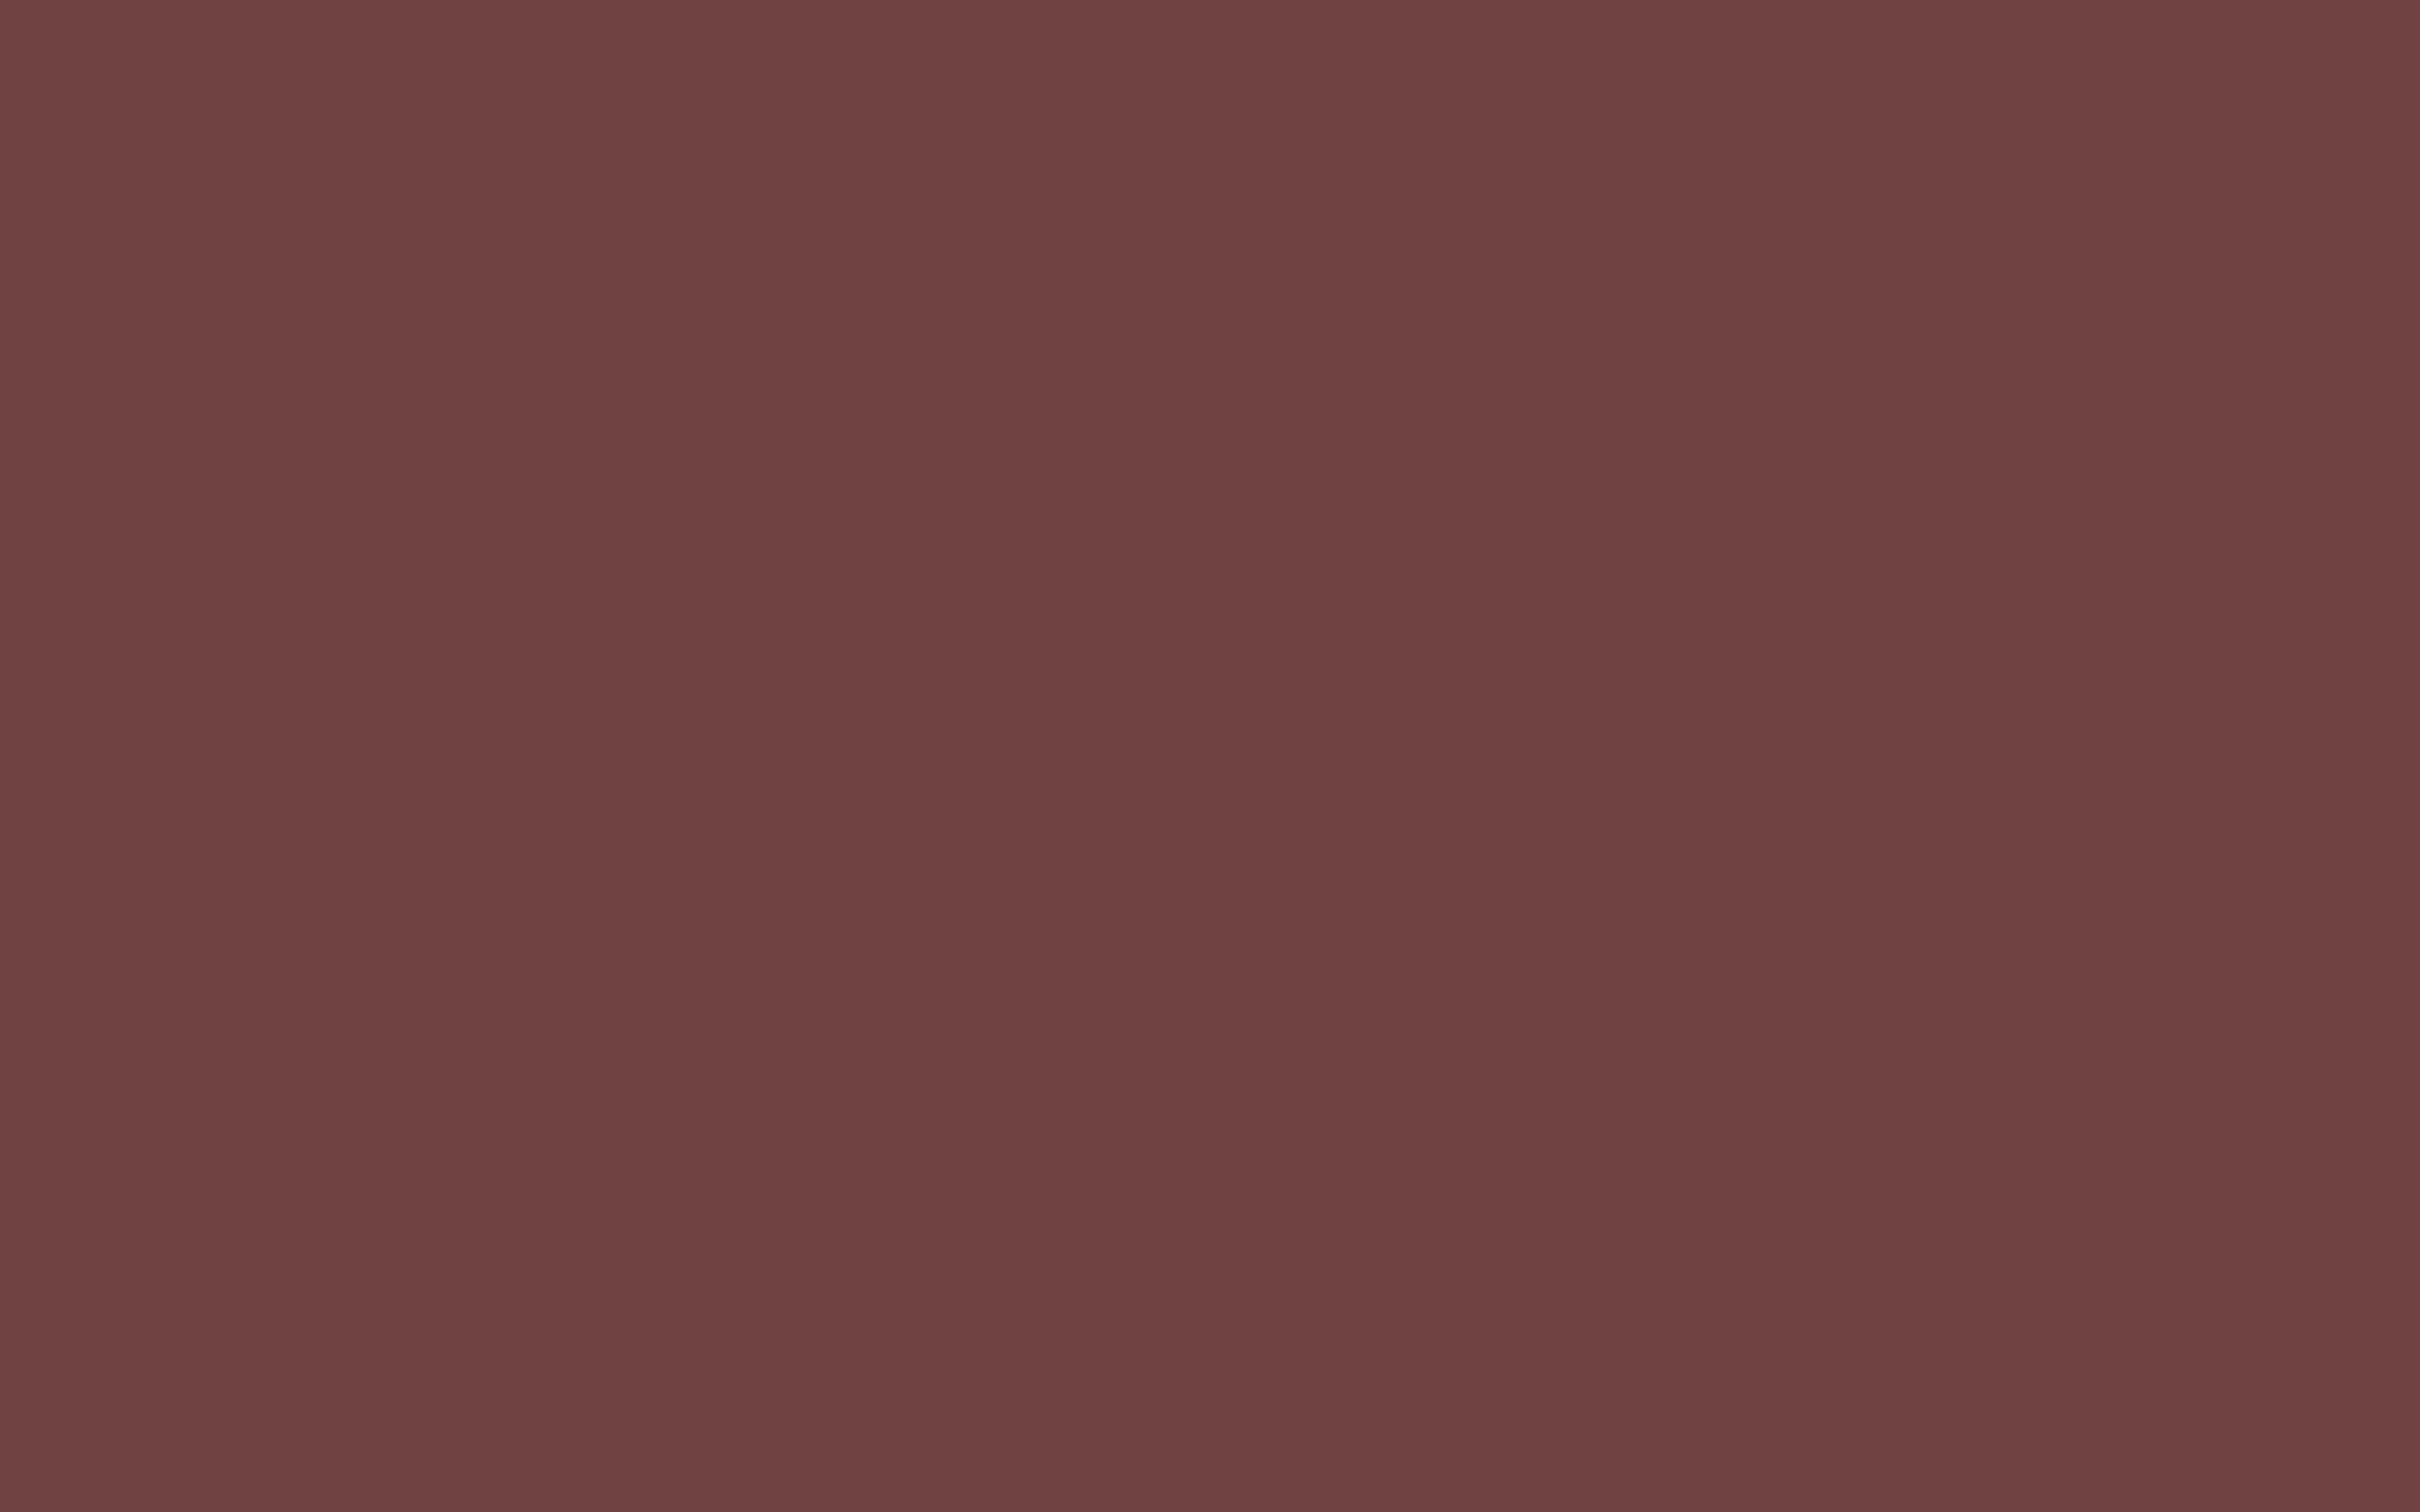 2880x1800 Deep Coffee Solid Color Background